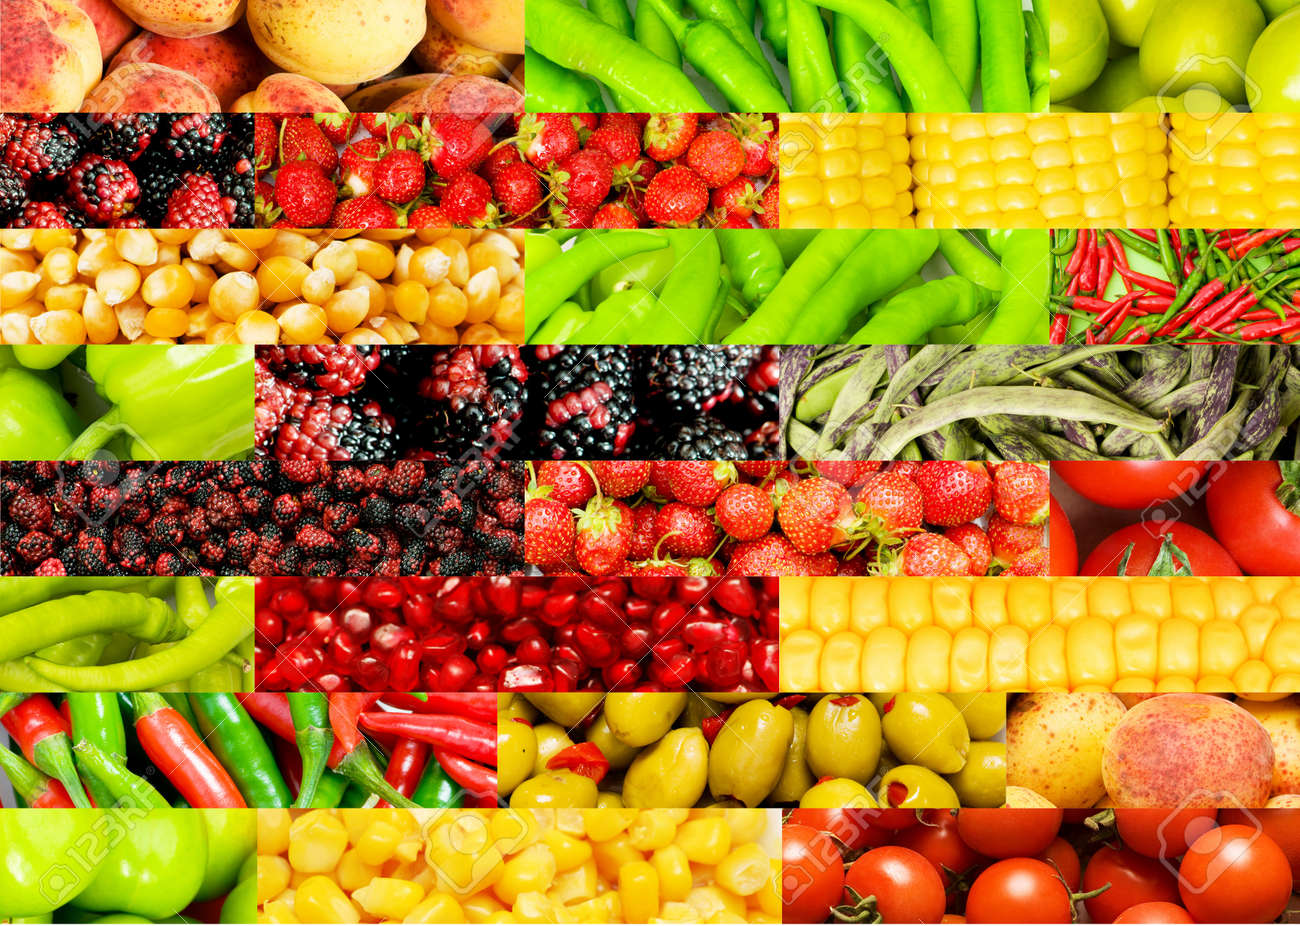 Collage of many different fruits and vegetables Stock Photo - 8943649